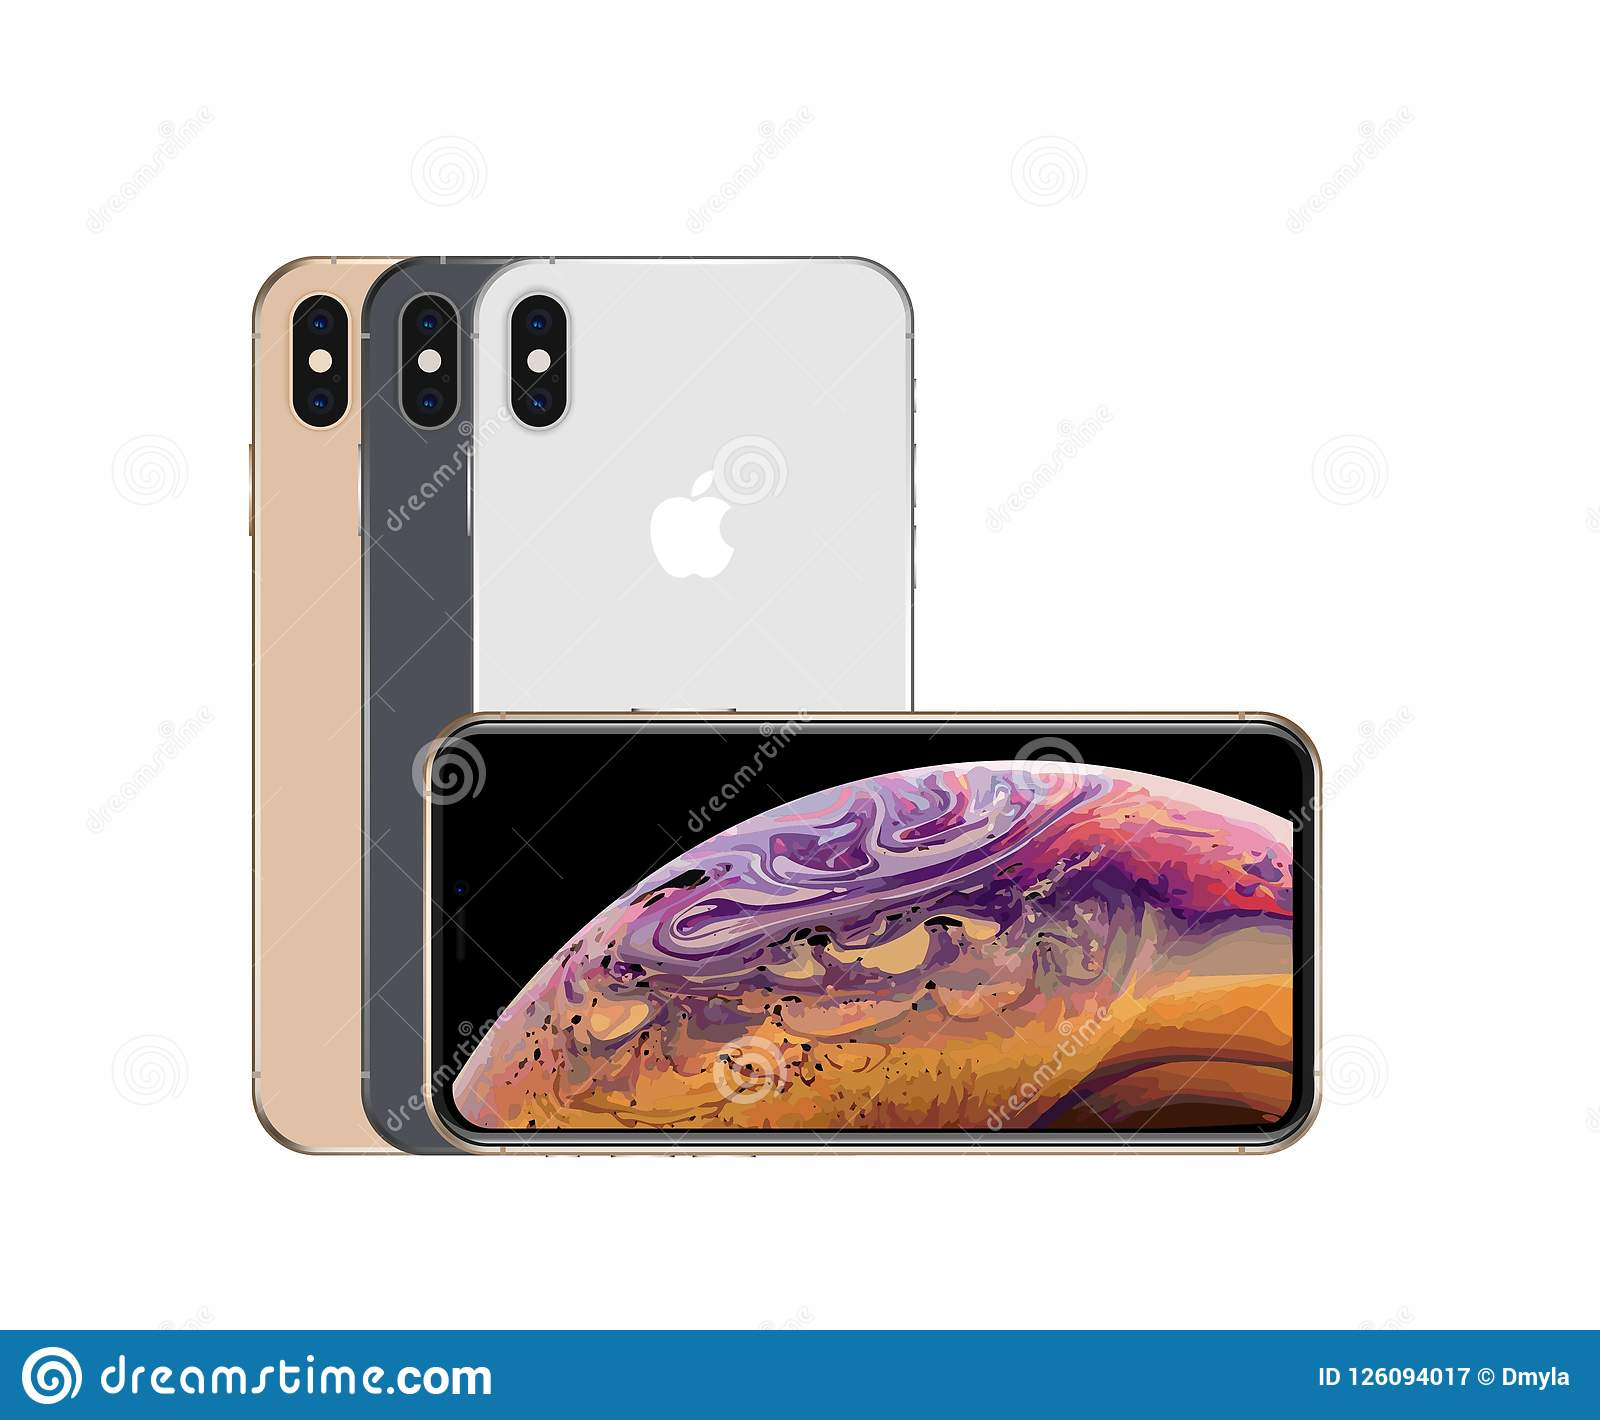 All colors of iPhone xs max